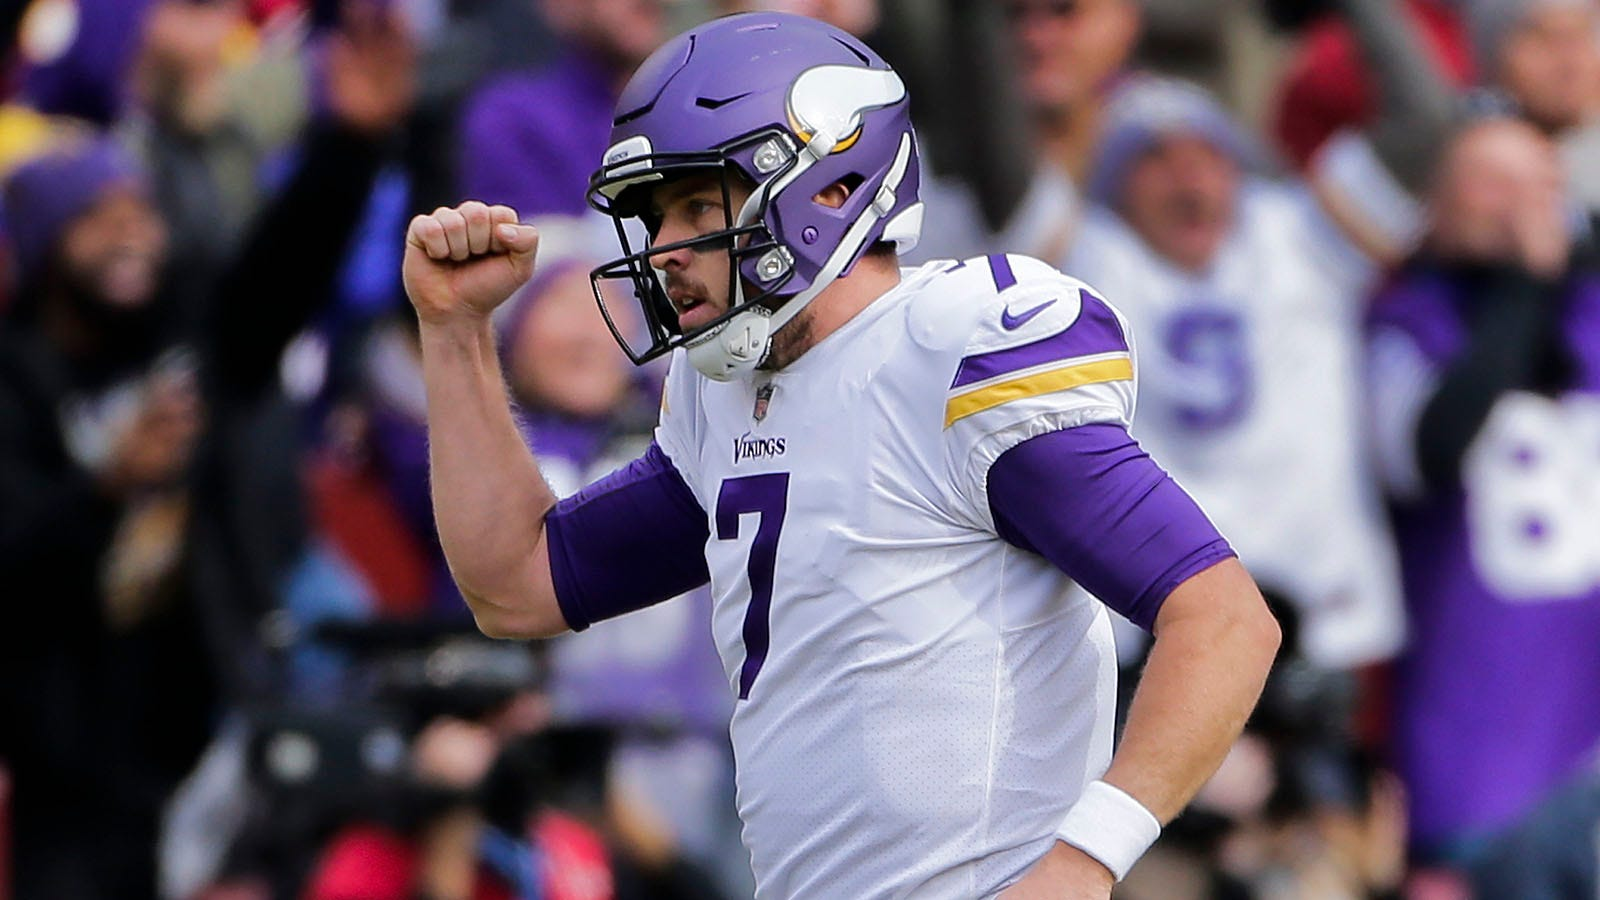 sports shoes 0c20f 9ae9d Preview: Vikings' Keenum gets chance to take down former team